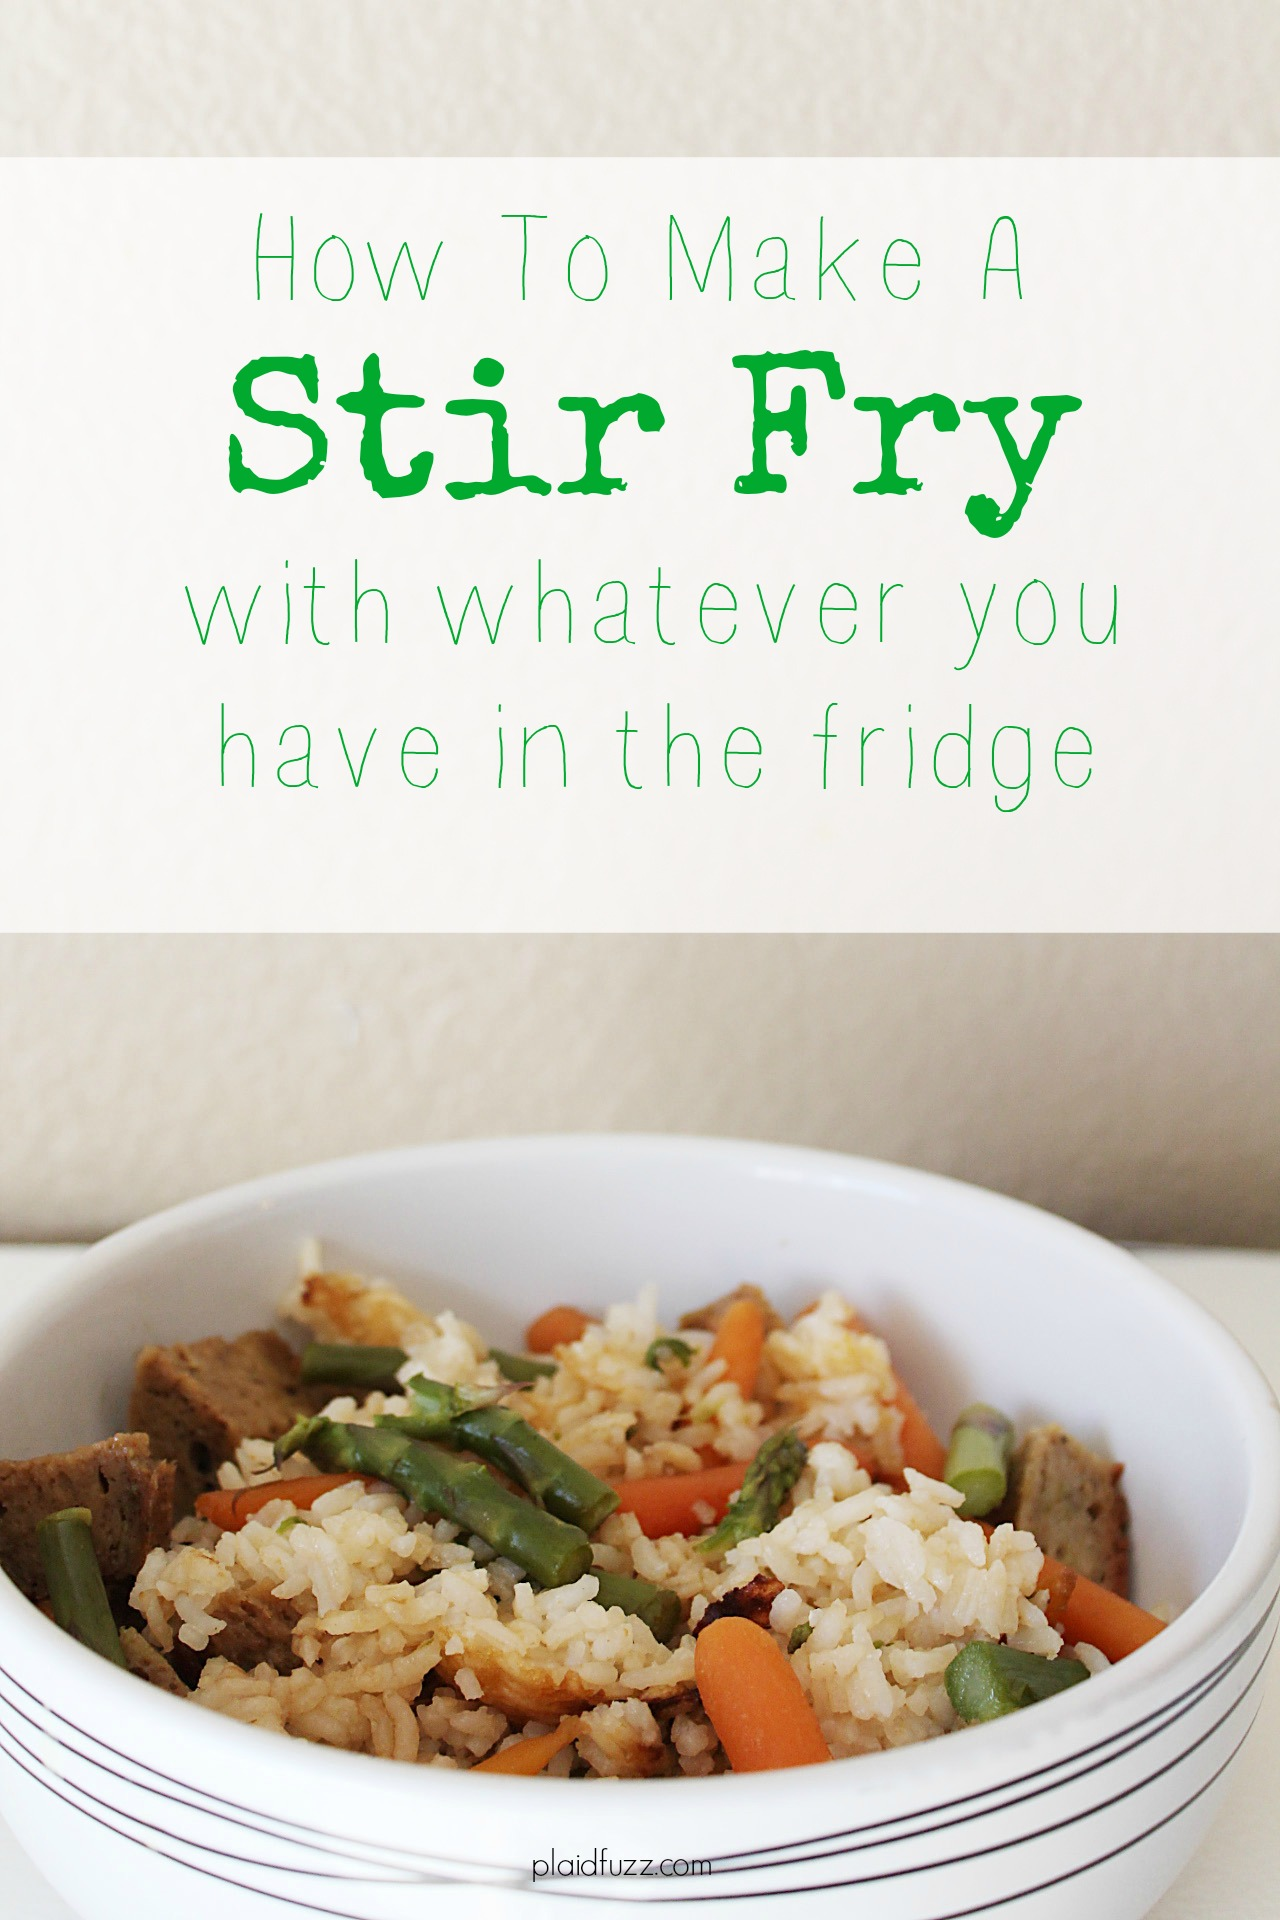 How To Make A Stir Fry With Whatever You Have In The Fridge